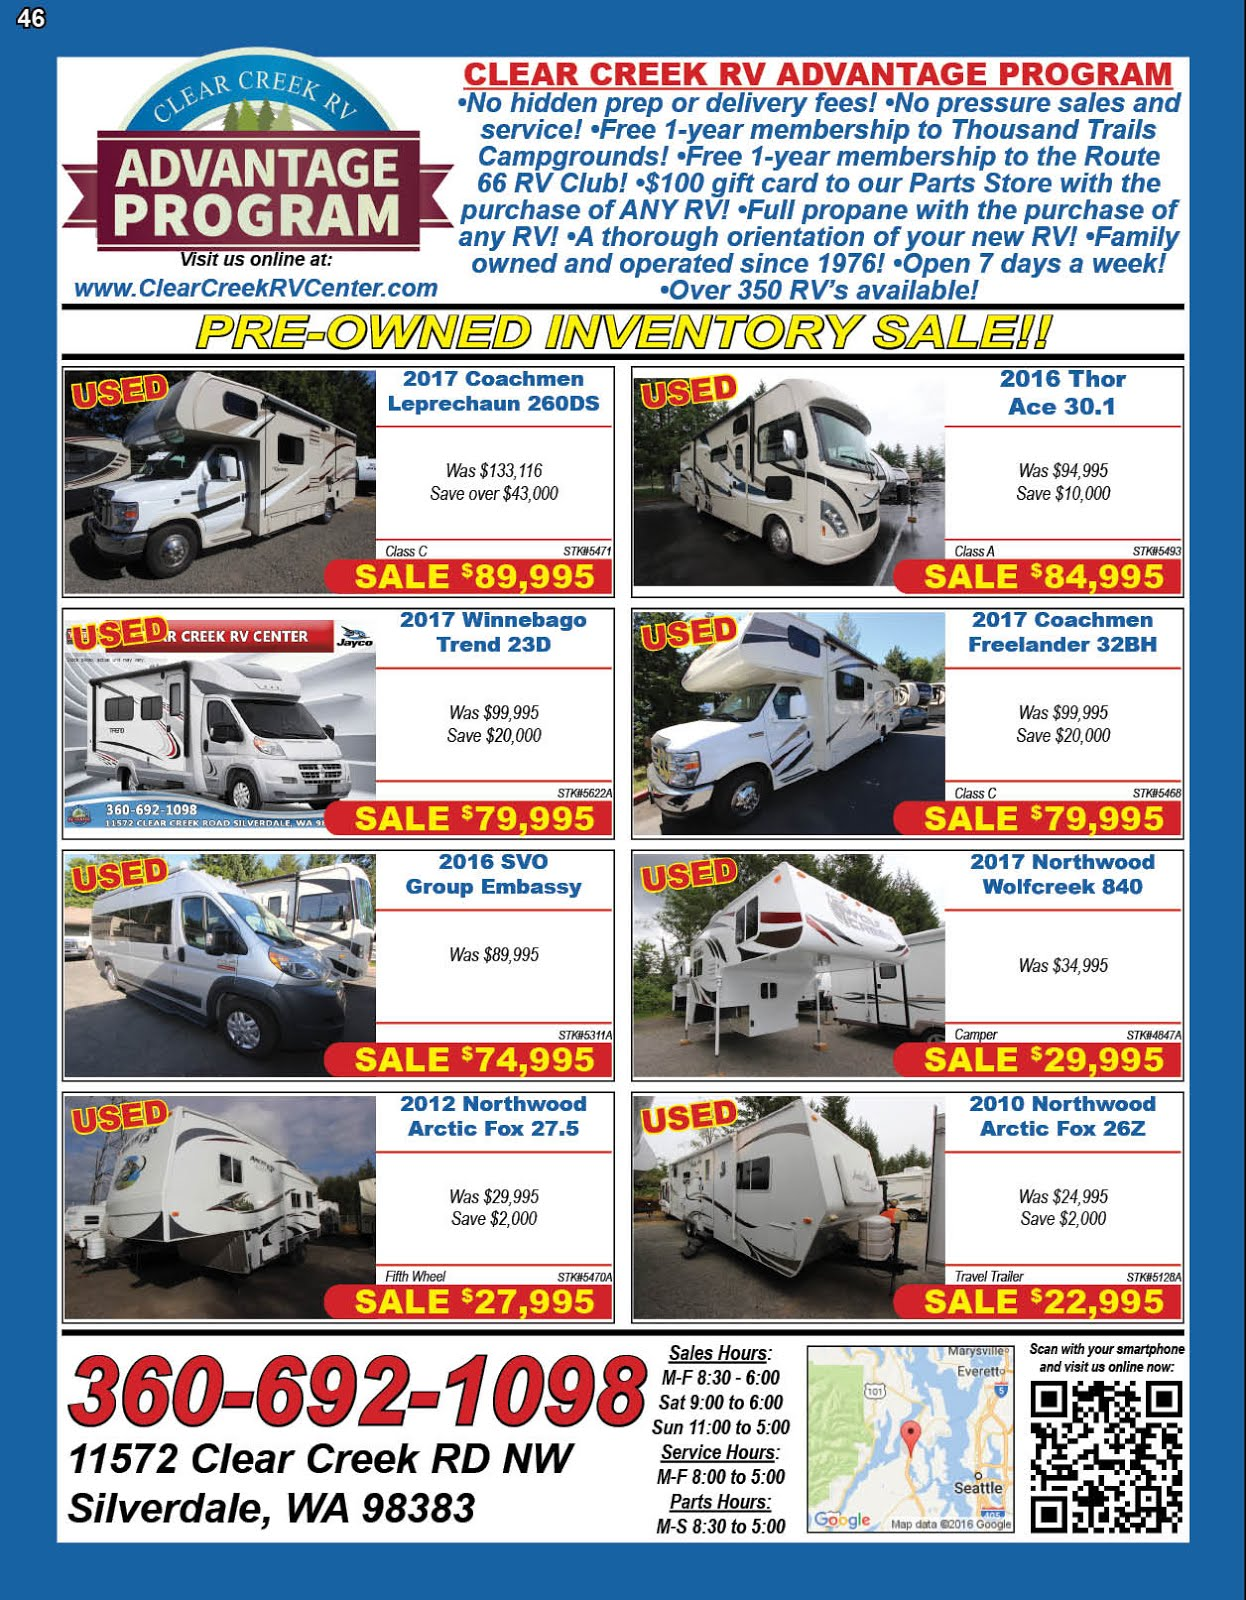 Clear Creek RV Center Clear Creek RV Advantage Program on New Inventory!!